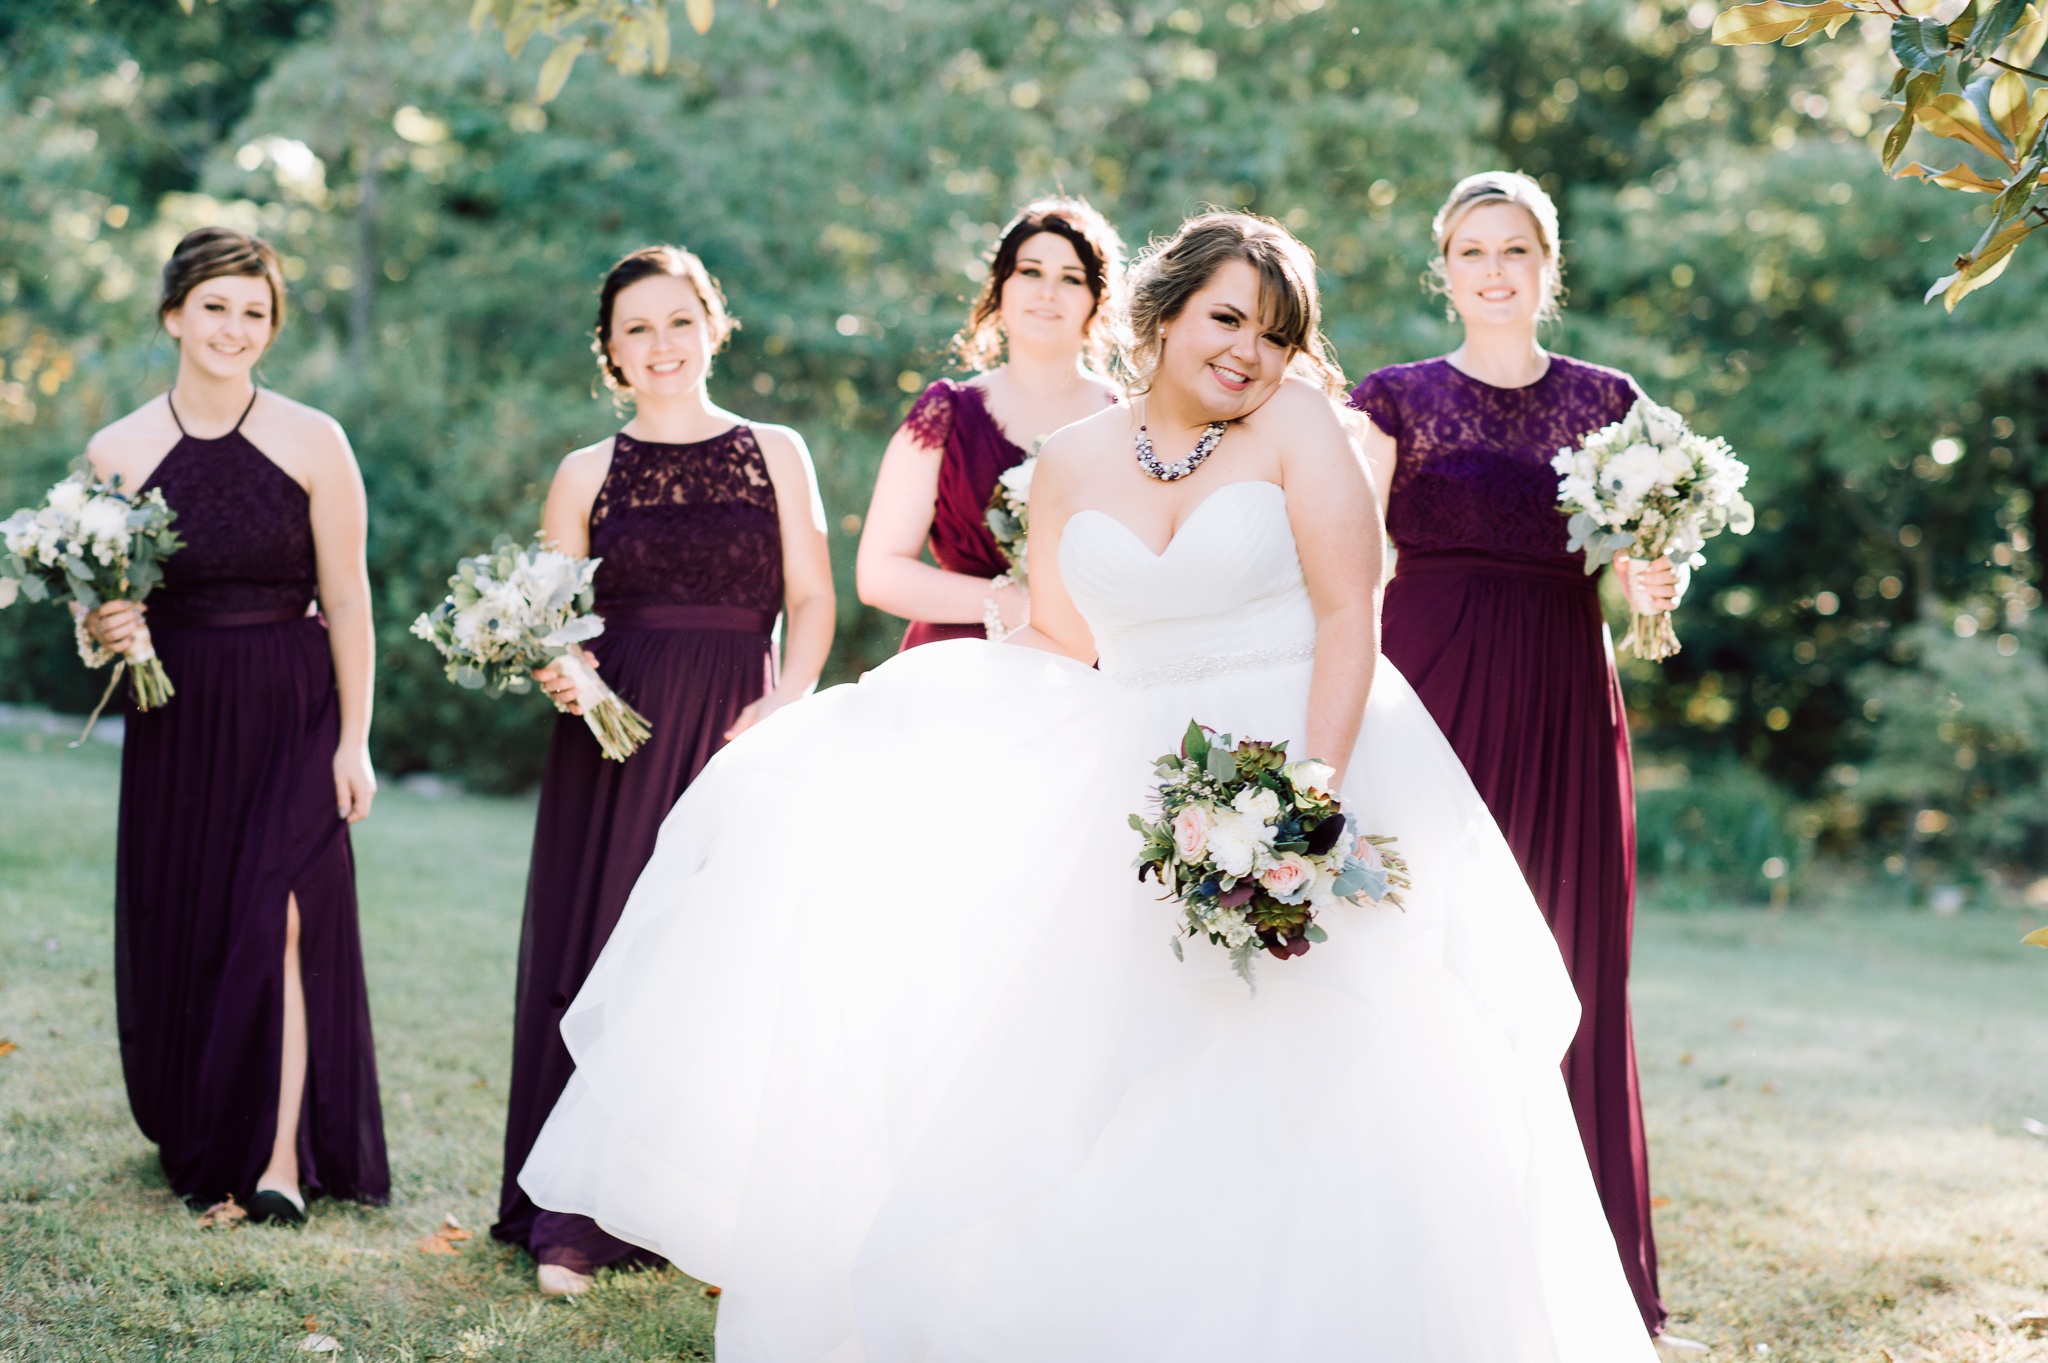 youseephotography_virginiawedding_fall_WallaceManor_EmilyCody (54).jpg